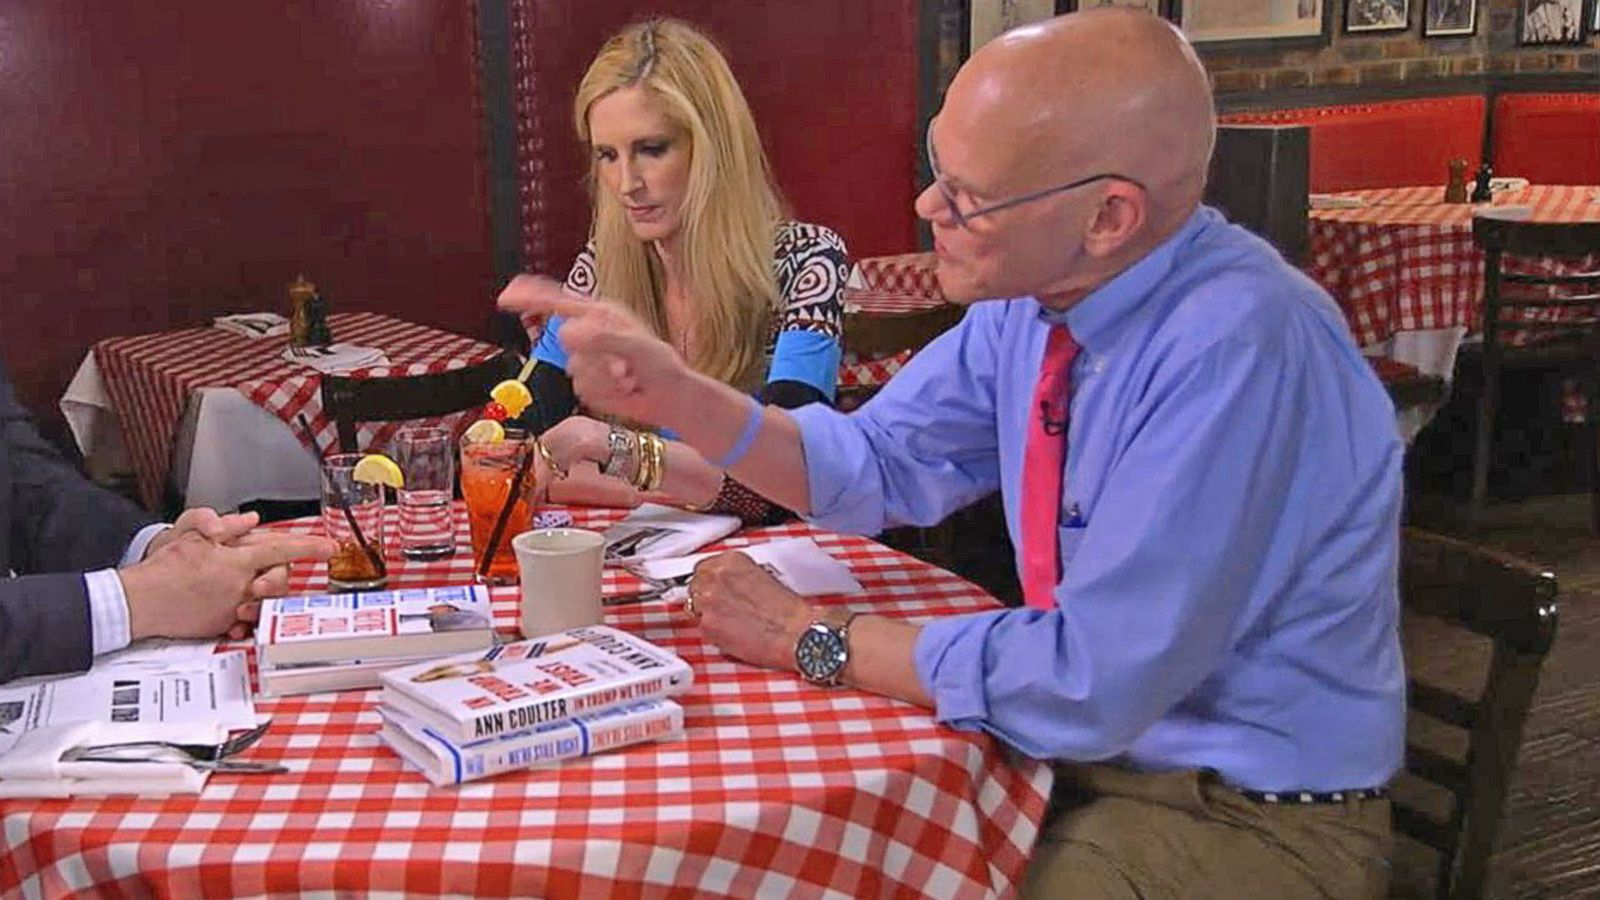 VIDEO: Ann Coulter, James Carville's Full Conversation on the 2016 Presidential Election